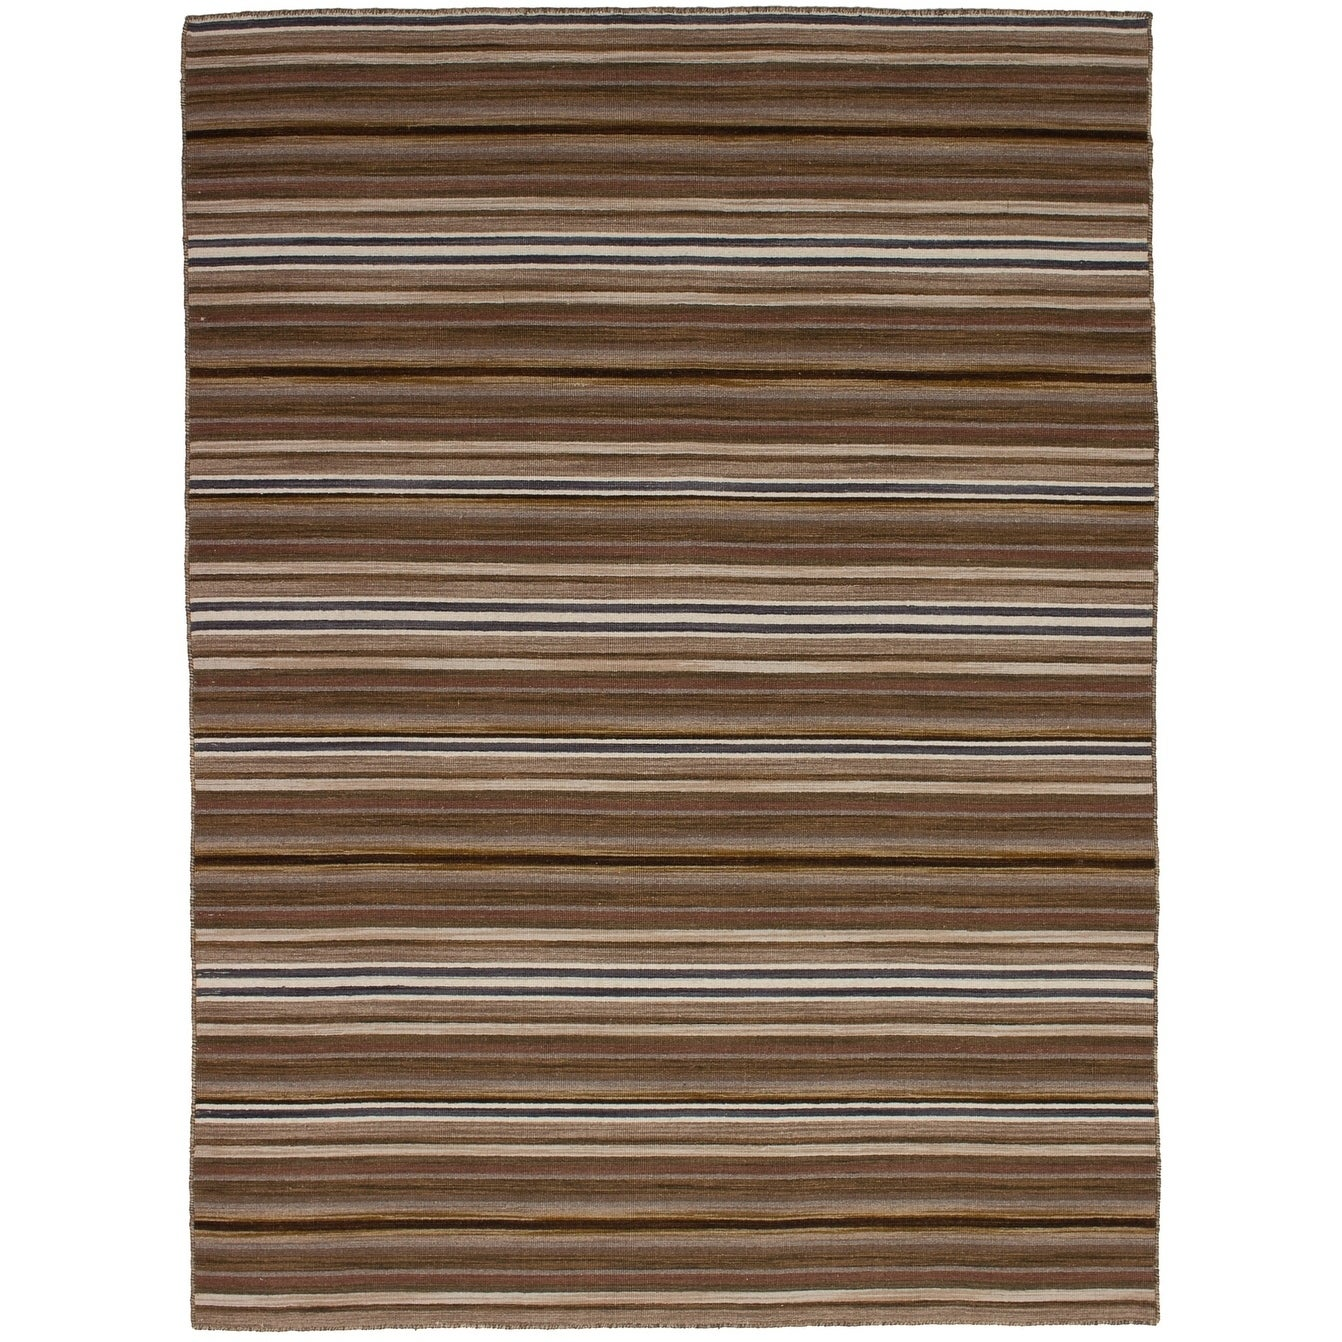 eCarpetGallery  Flat-weave Manhattan Brown Wool Kilim - 53 x 710 (Brown - 53 x 710)